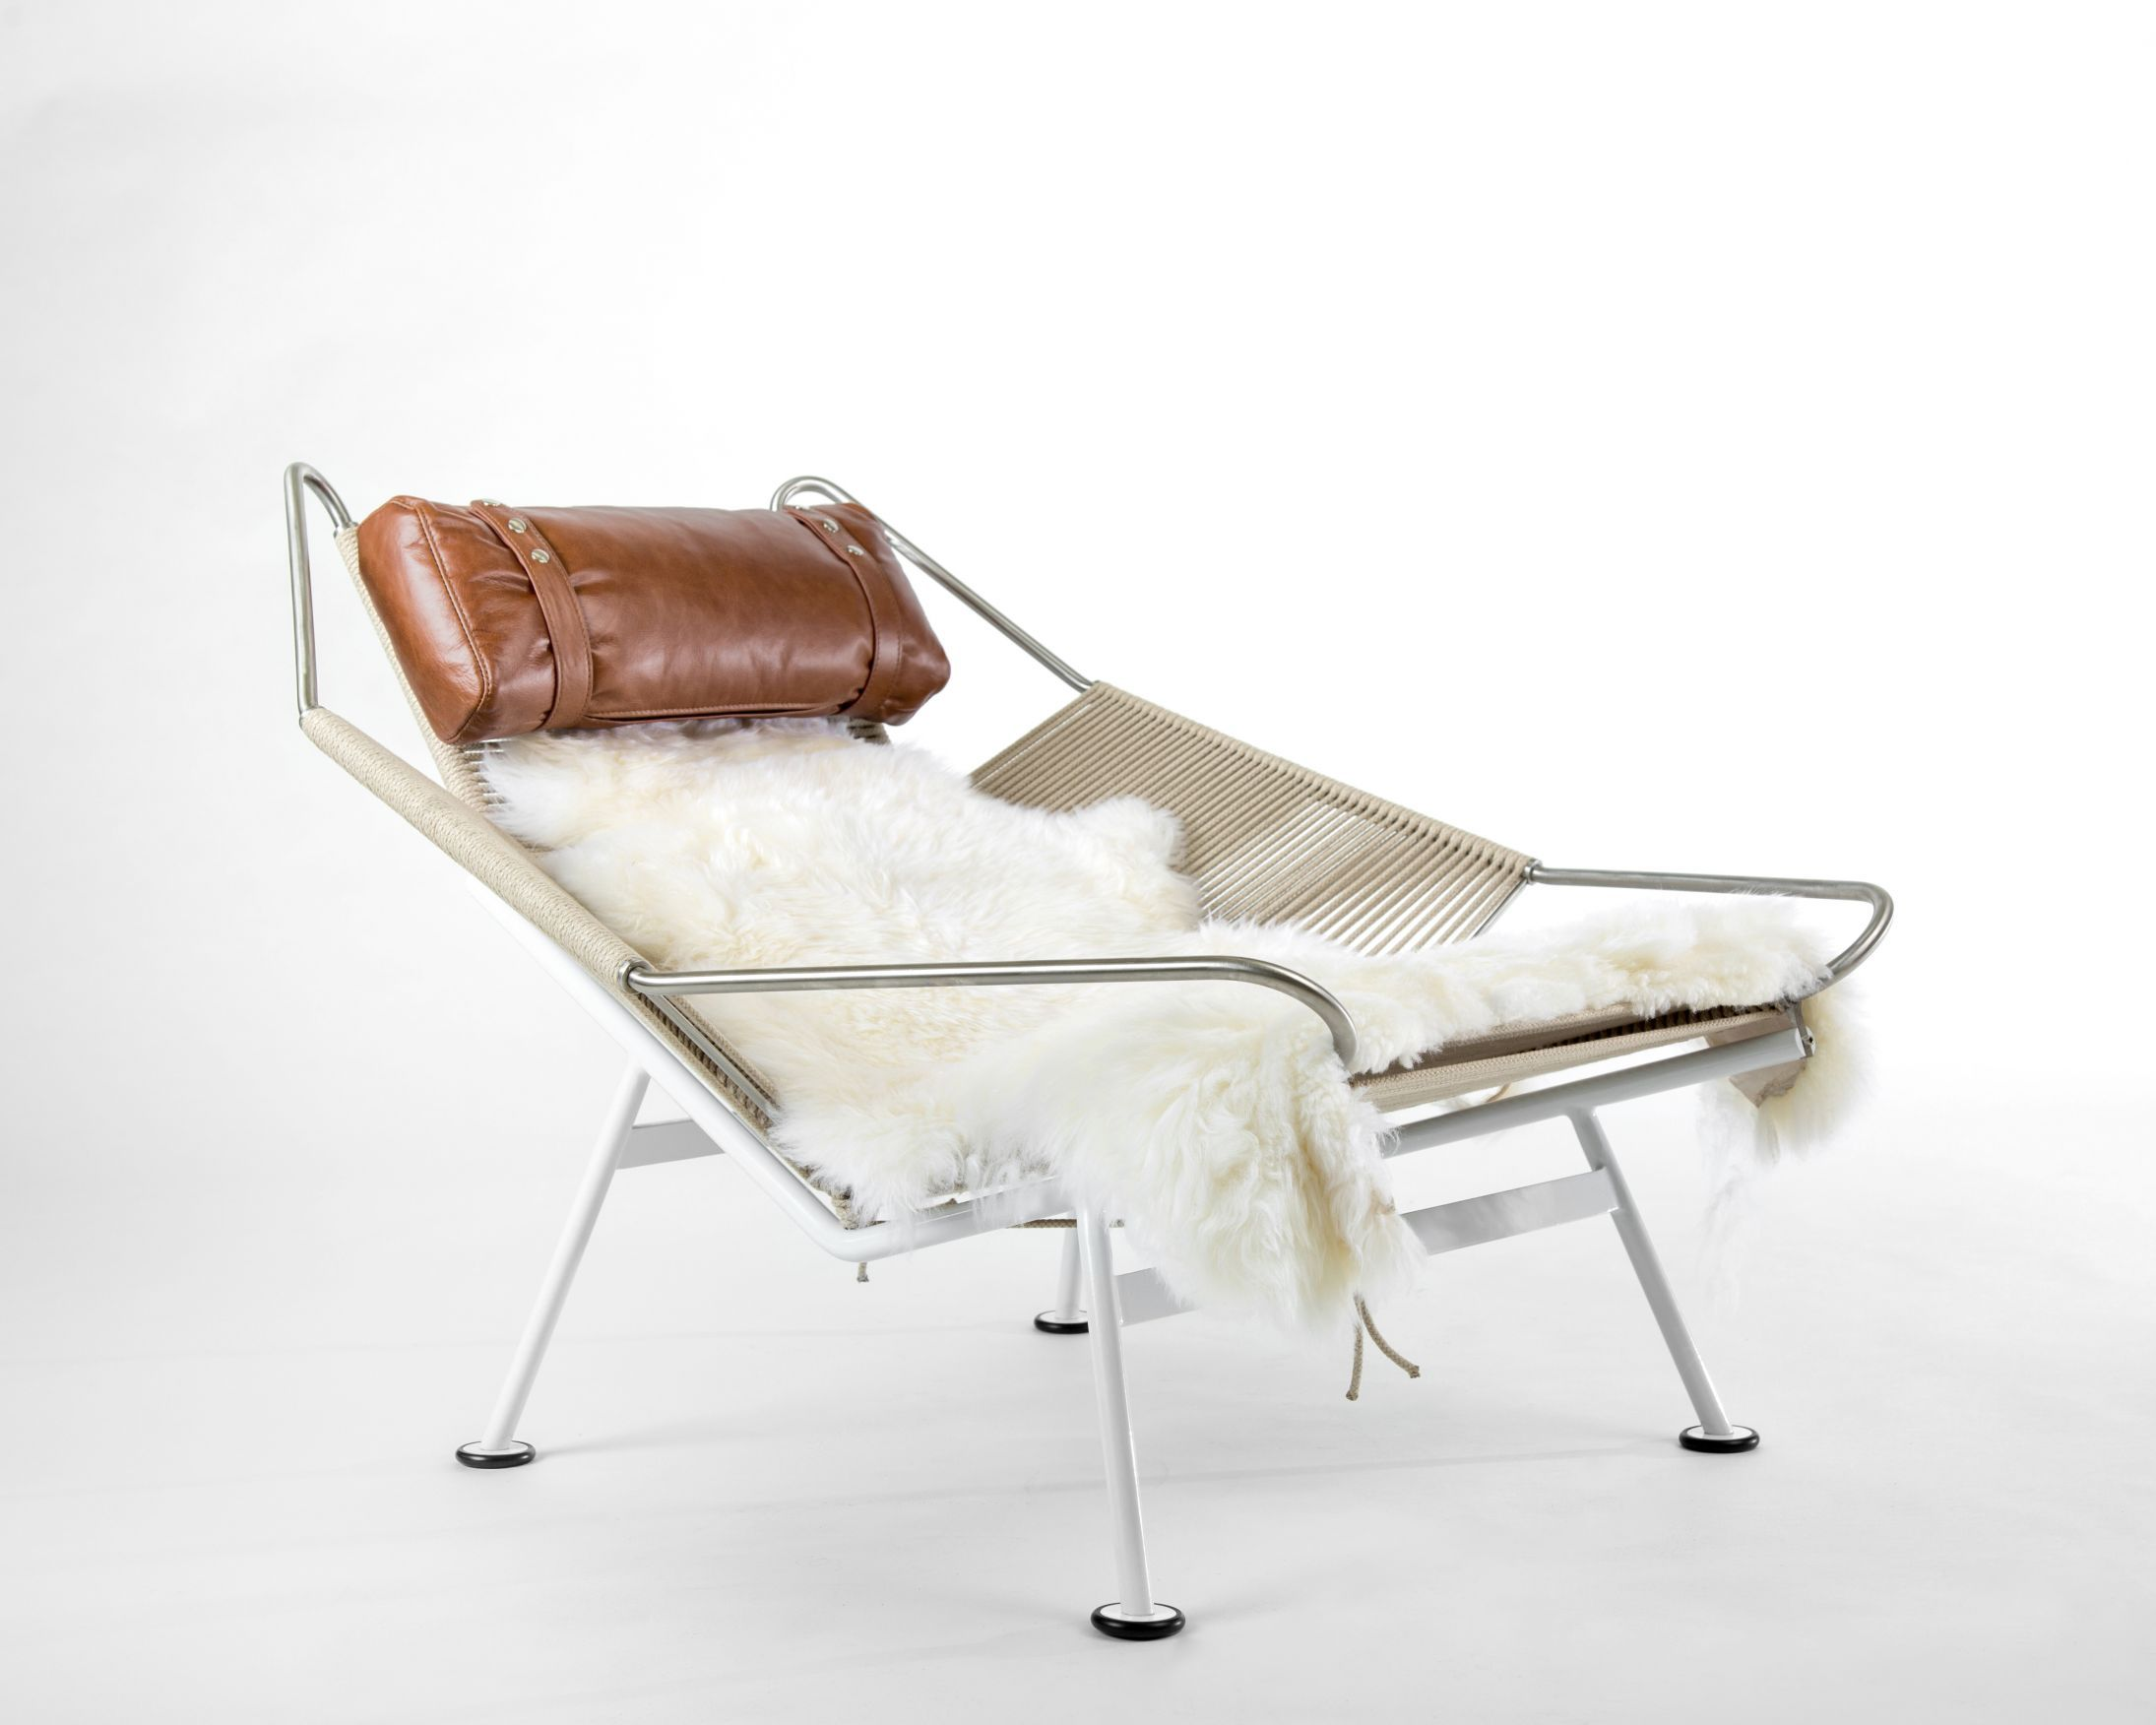 Living Room Chair   Which Color Headrest? Flag Halyard | Rove Concepts